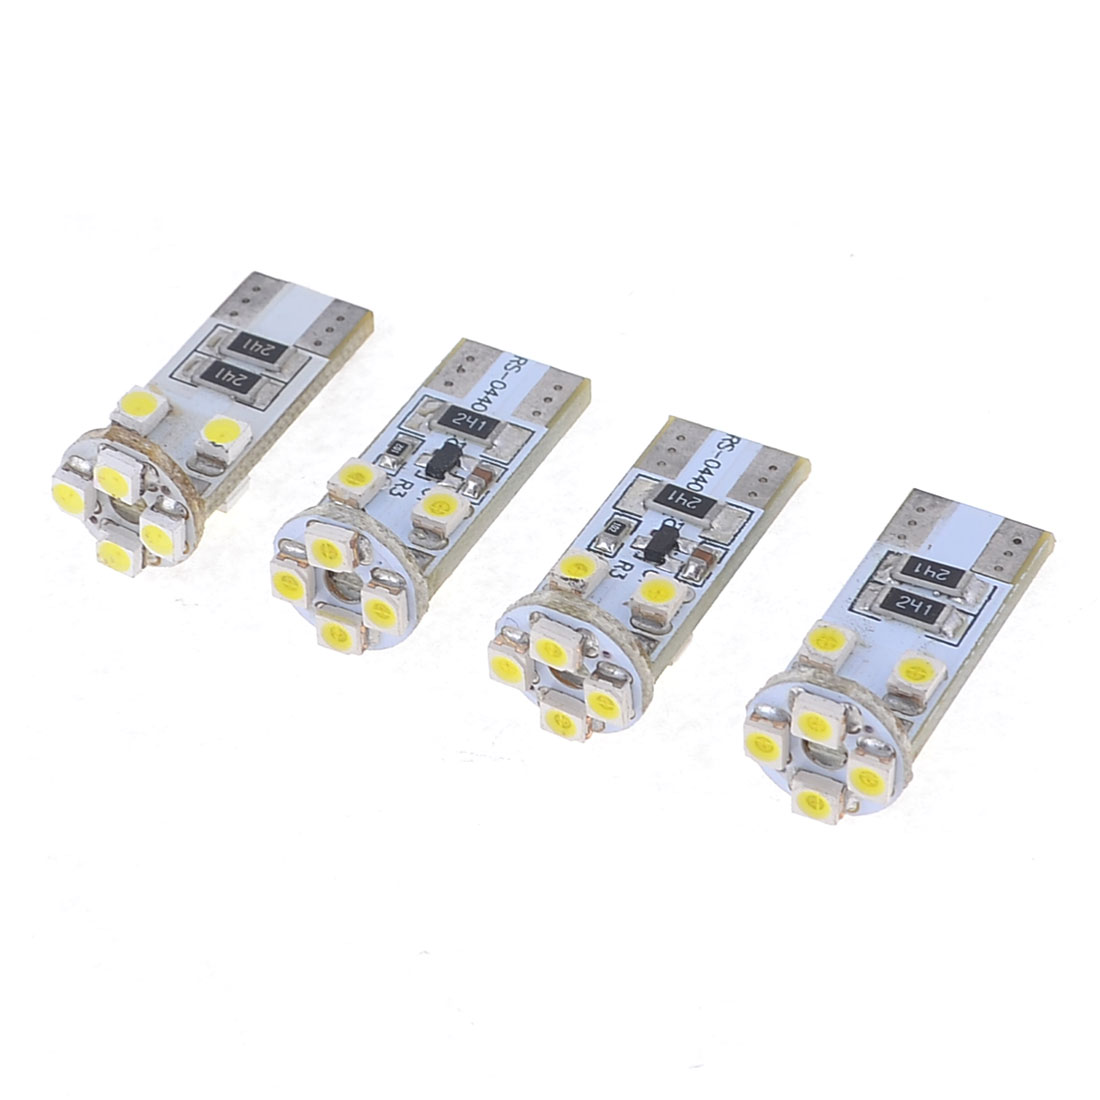 4 x T10 194 152 Wedge Canbus Error Free White 3528 1210 SMD 8-LED Car Light Lamp